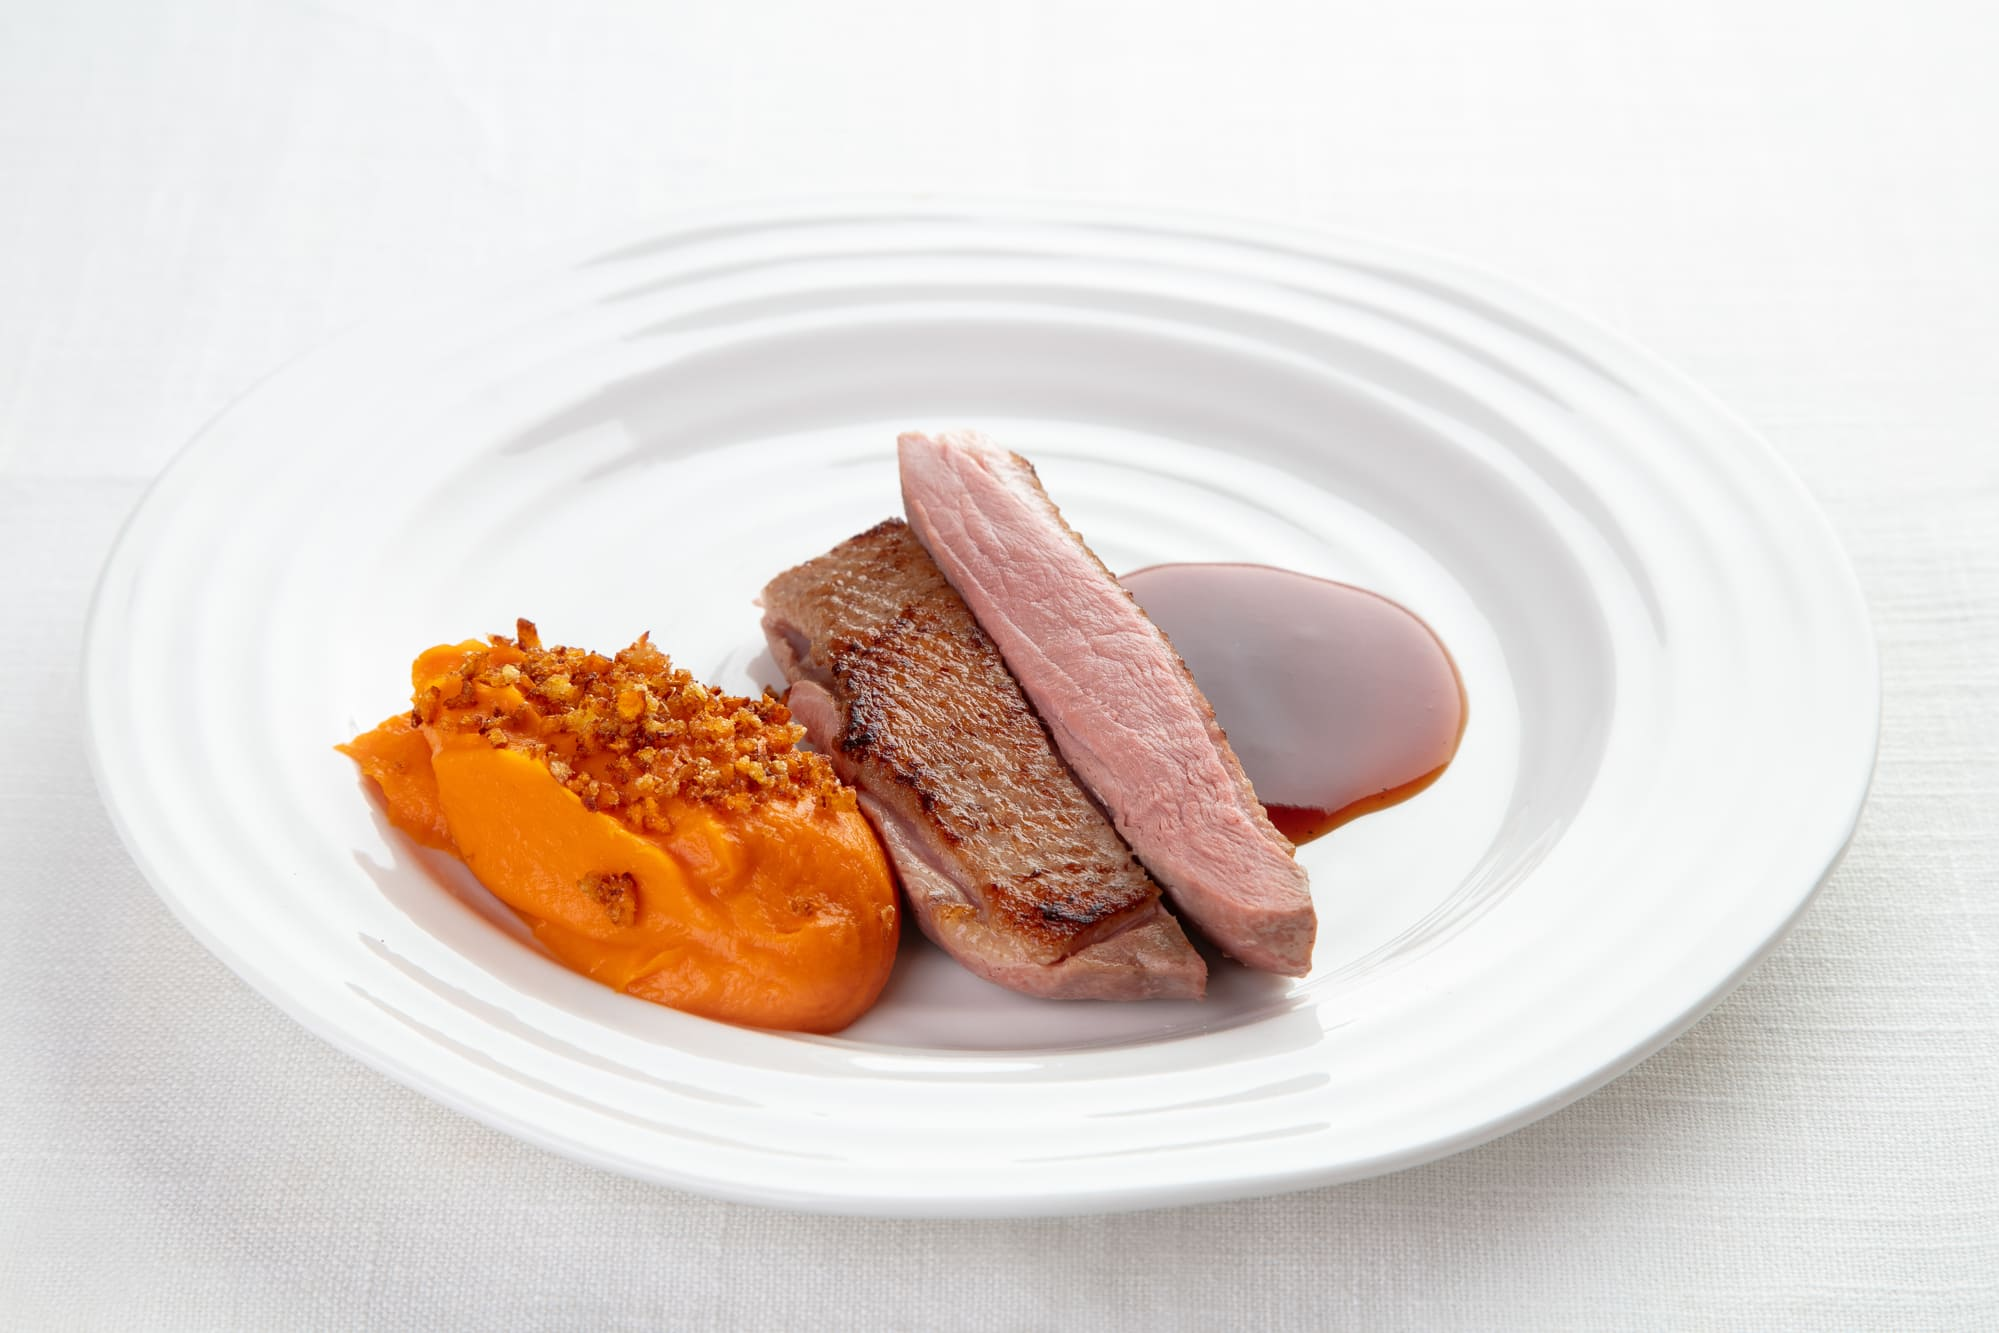 Duck breast with mashed sweet potato and BBQ sauce